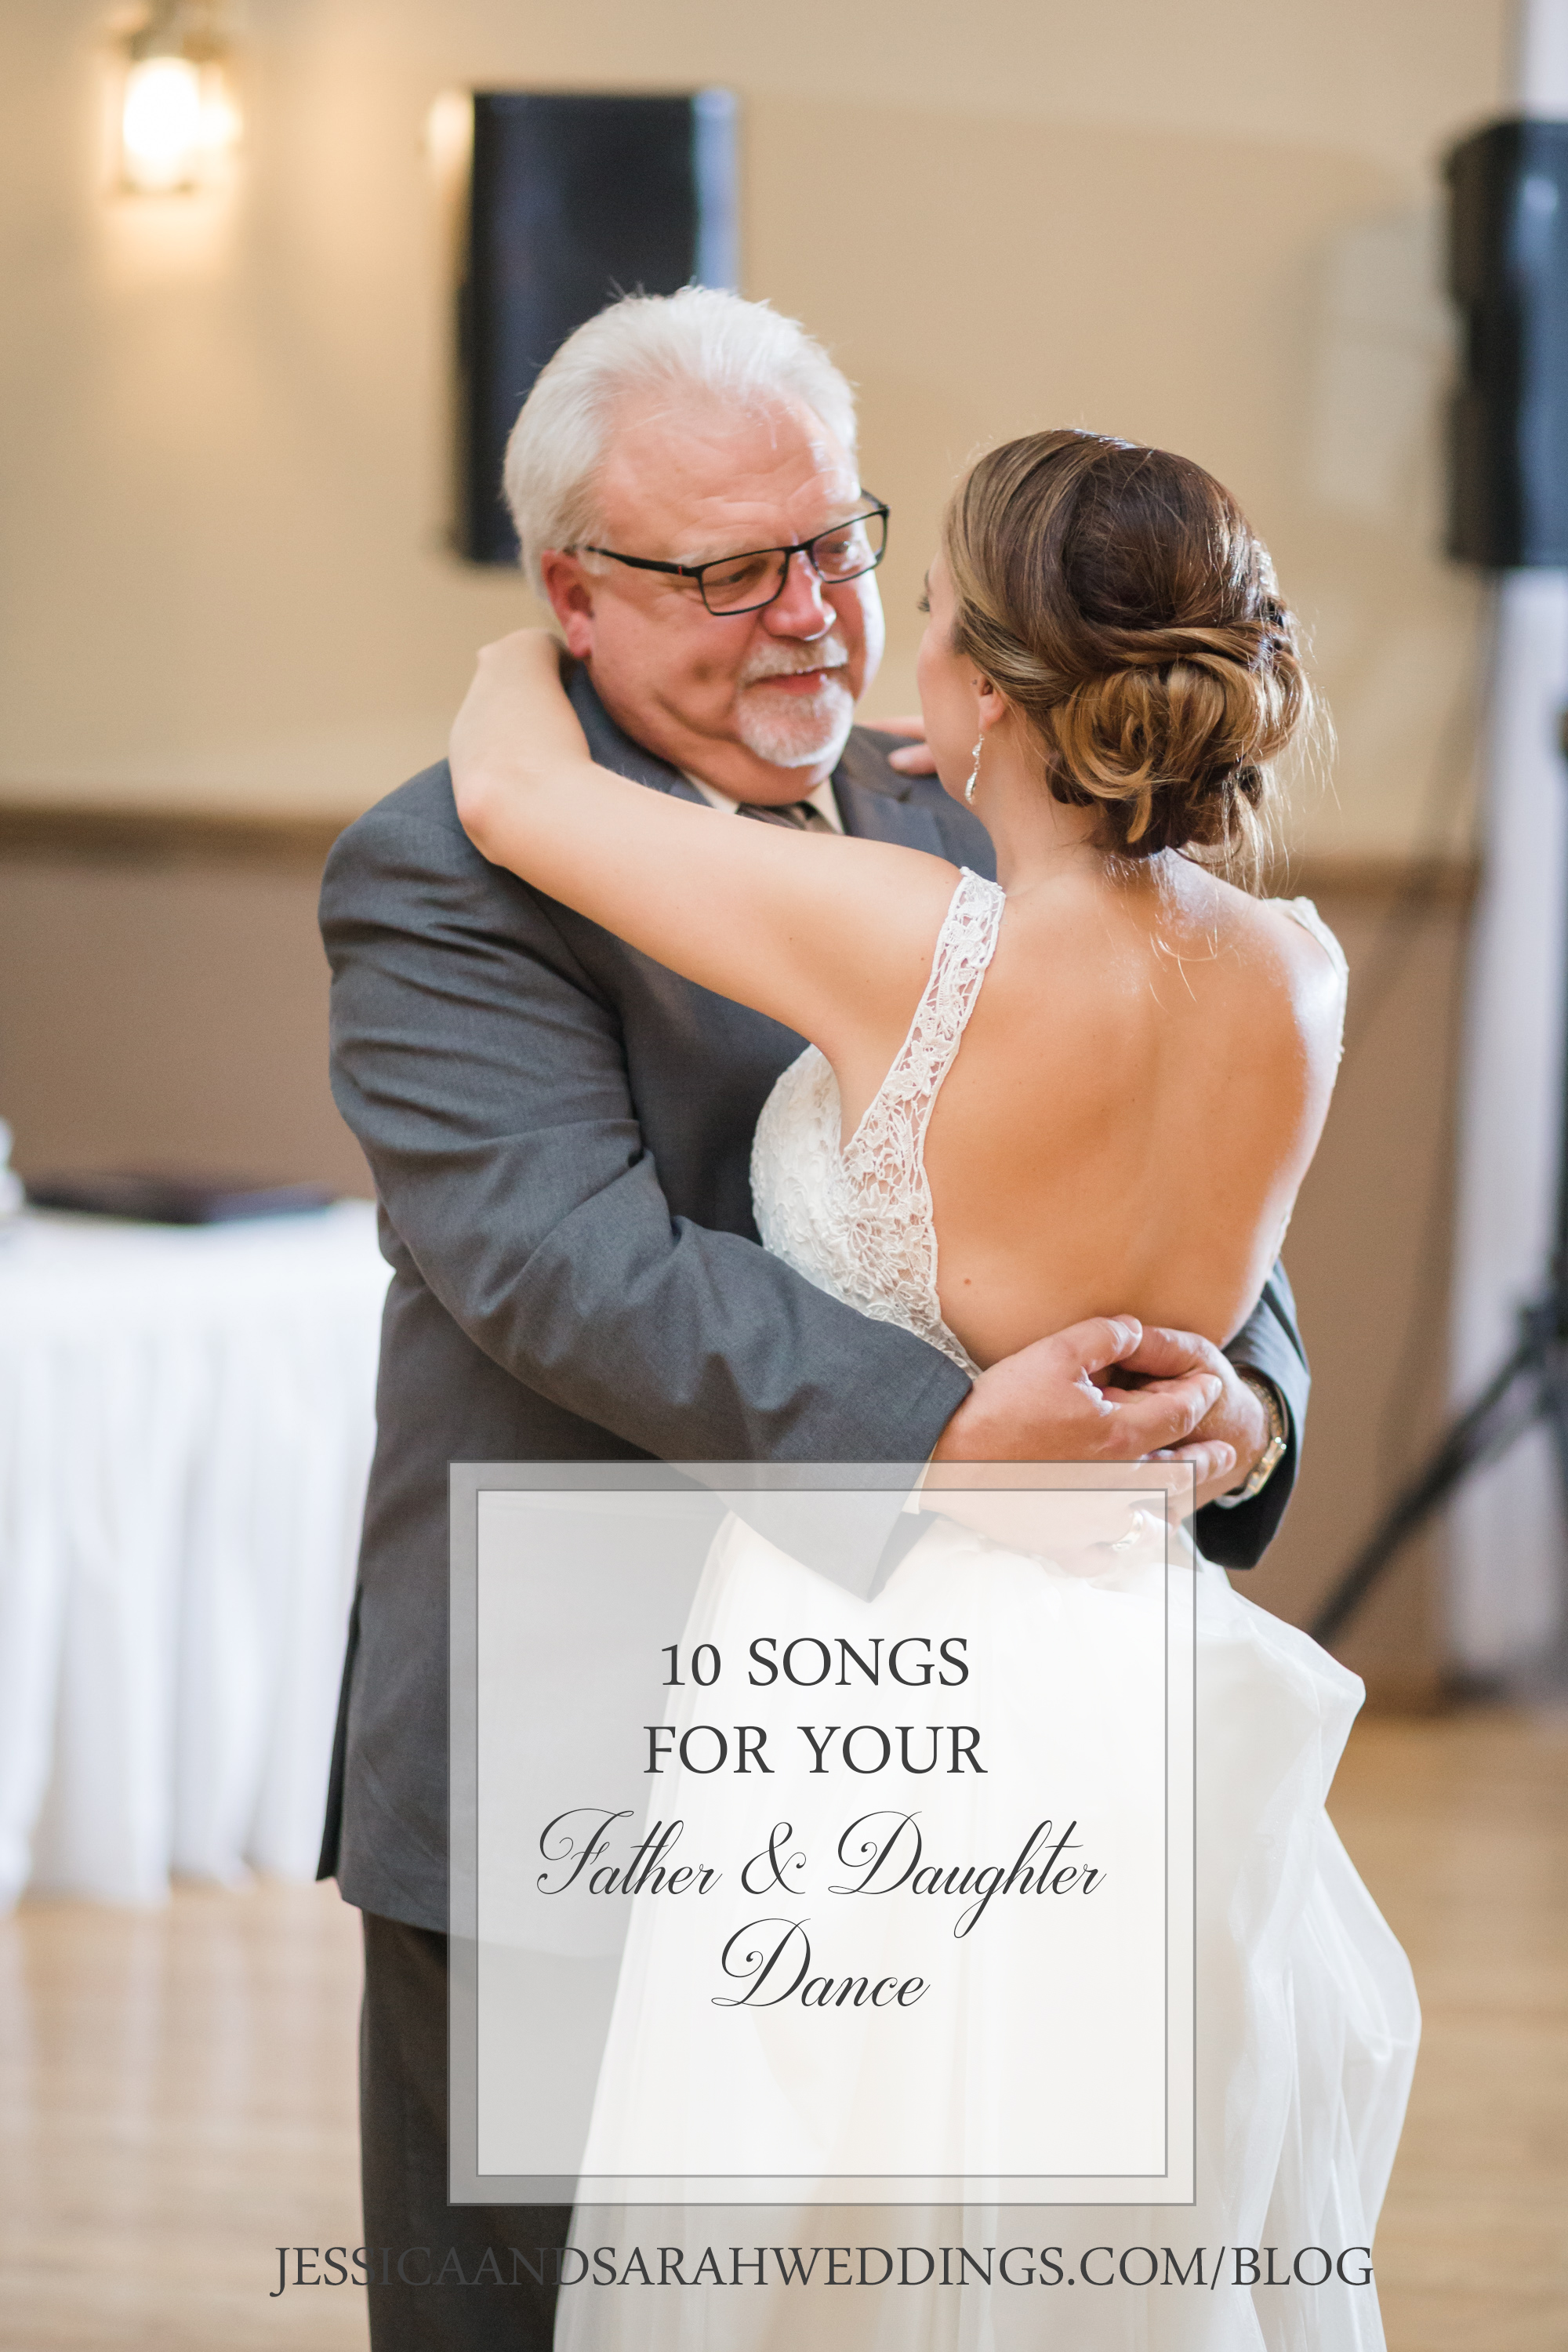 10-songs-father-daughter-dance.jpg